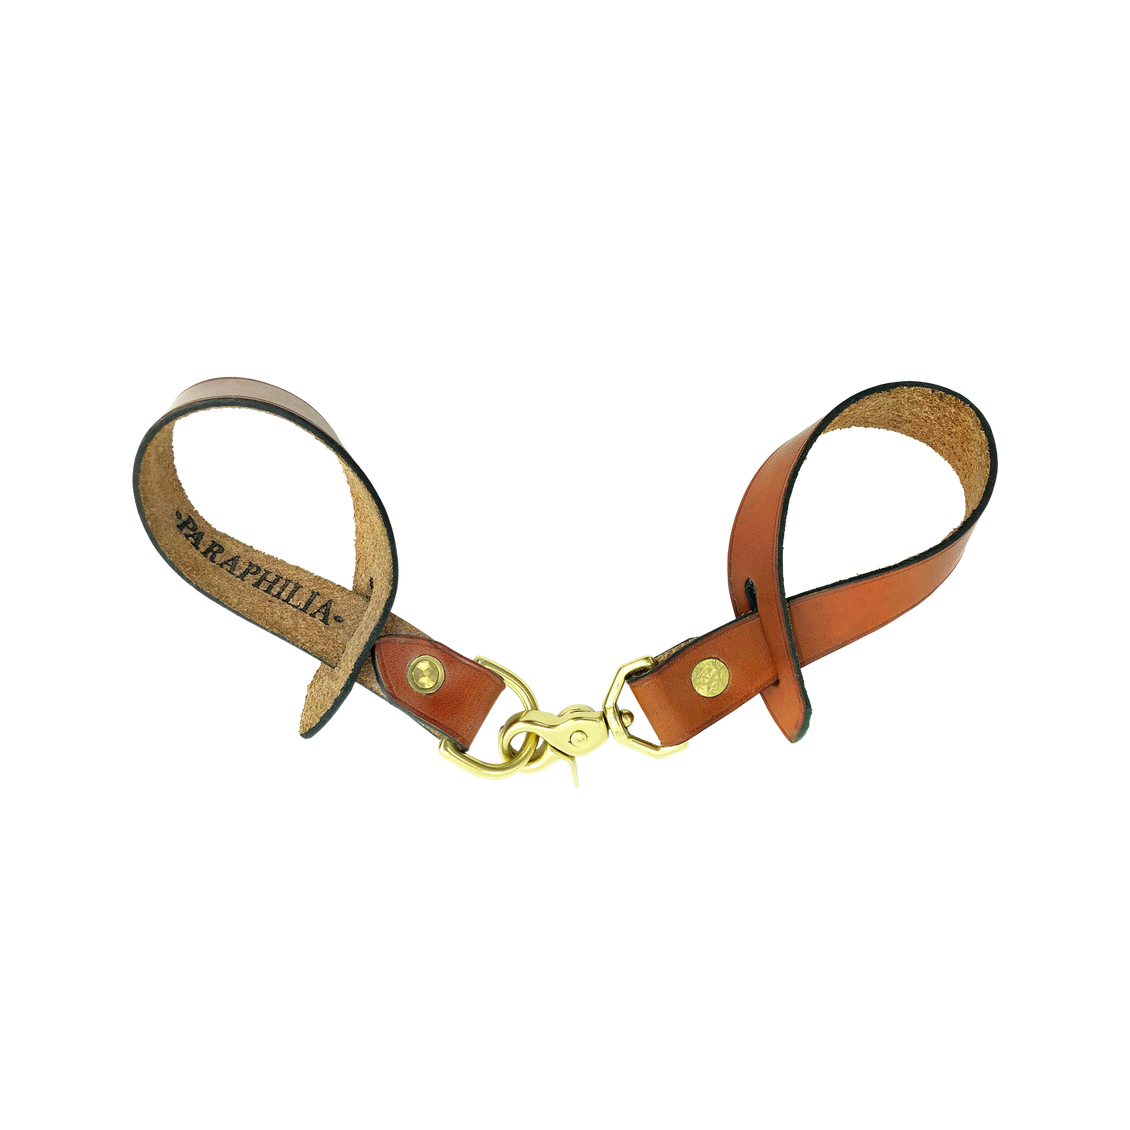 BRIDLE HANGING STRAP W/ D-RING - TAN